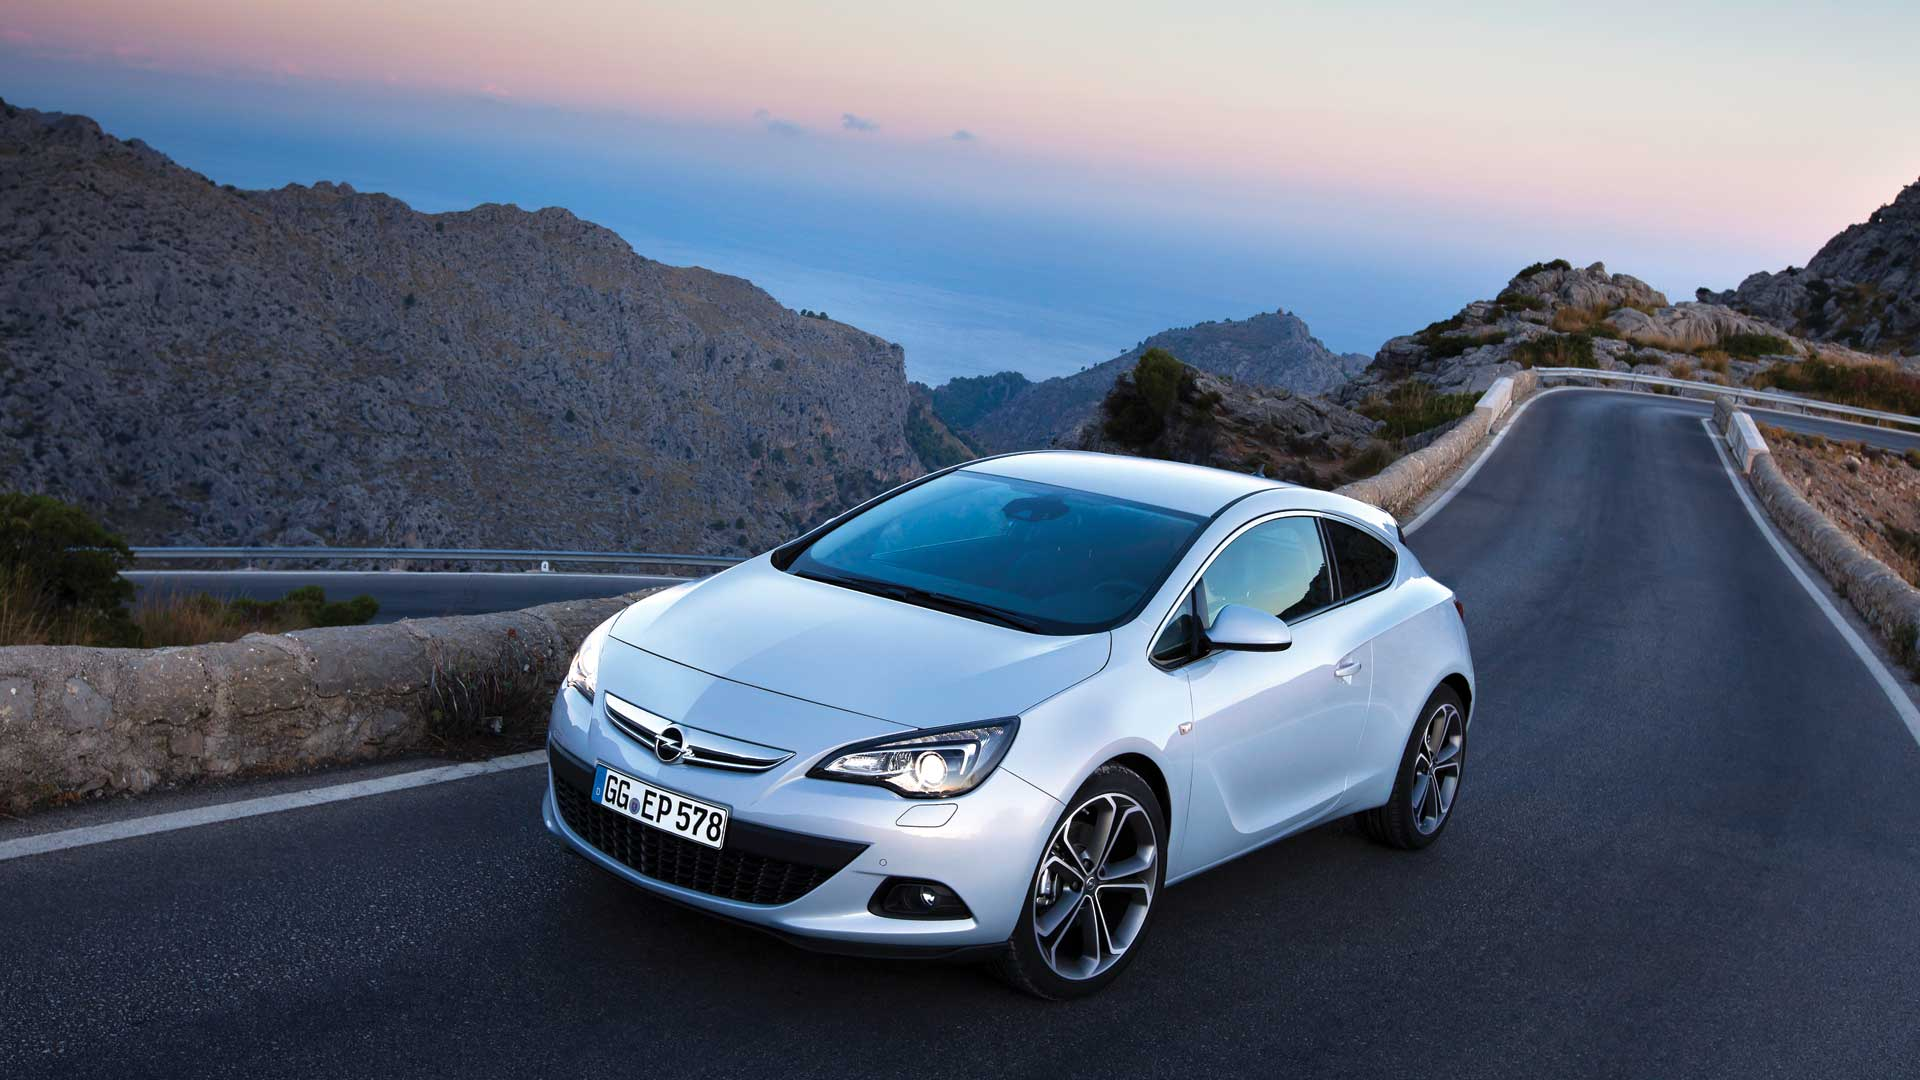 1920x1080 - Vauxhall Wallpapers 17